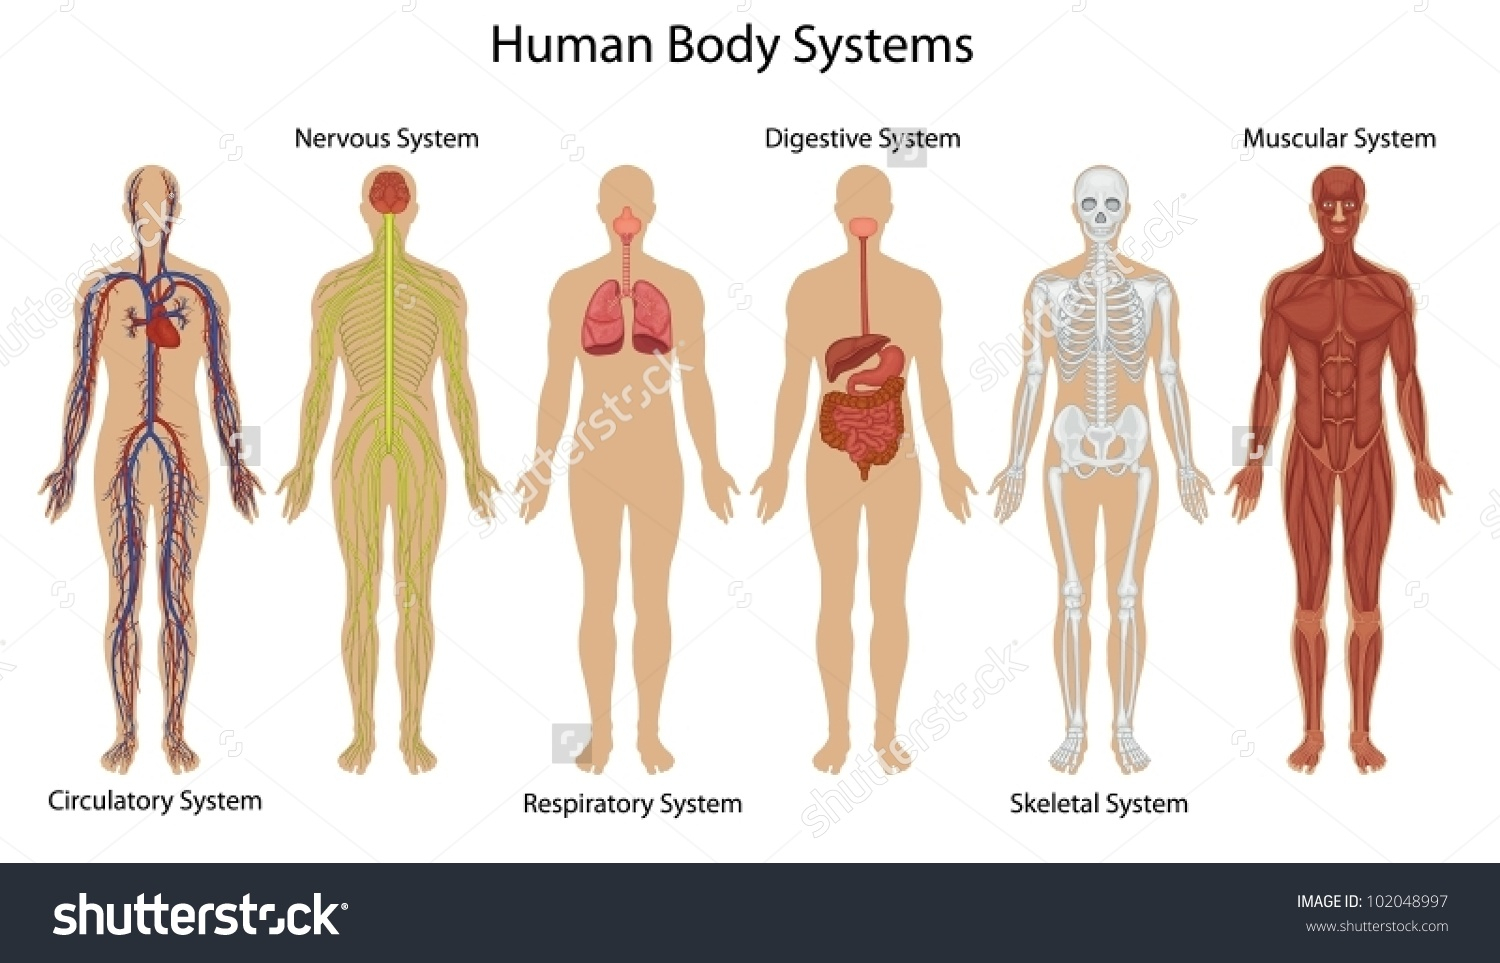 nervous system in the body clipart - Clipground